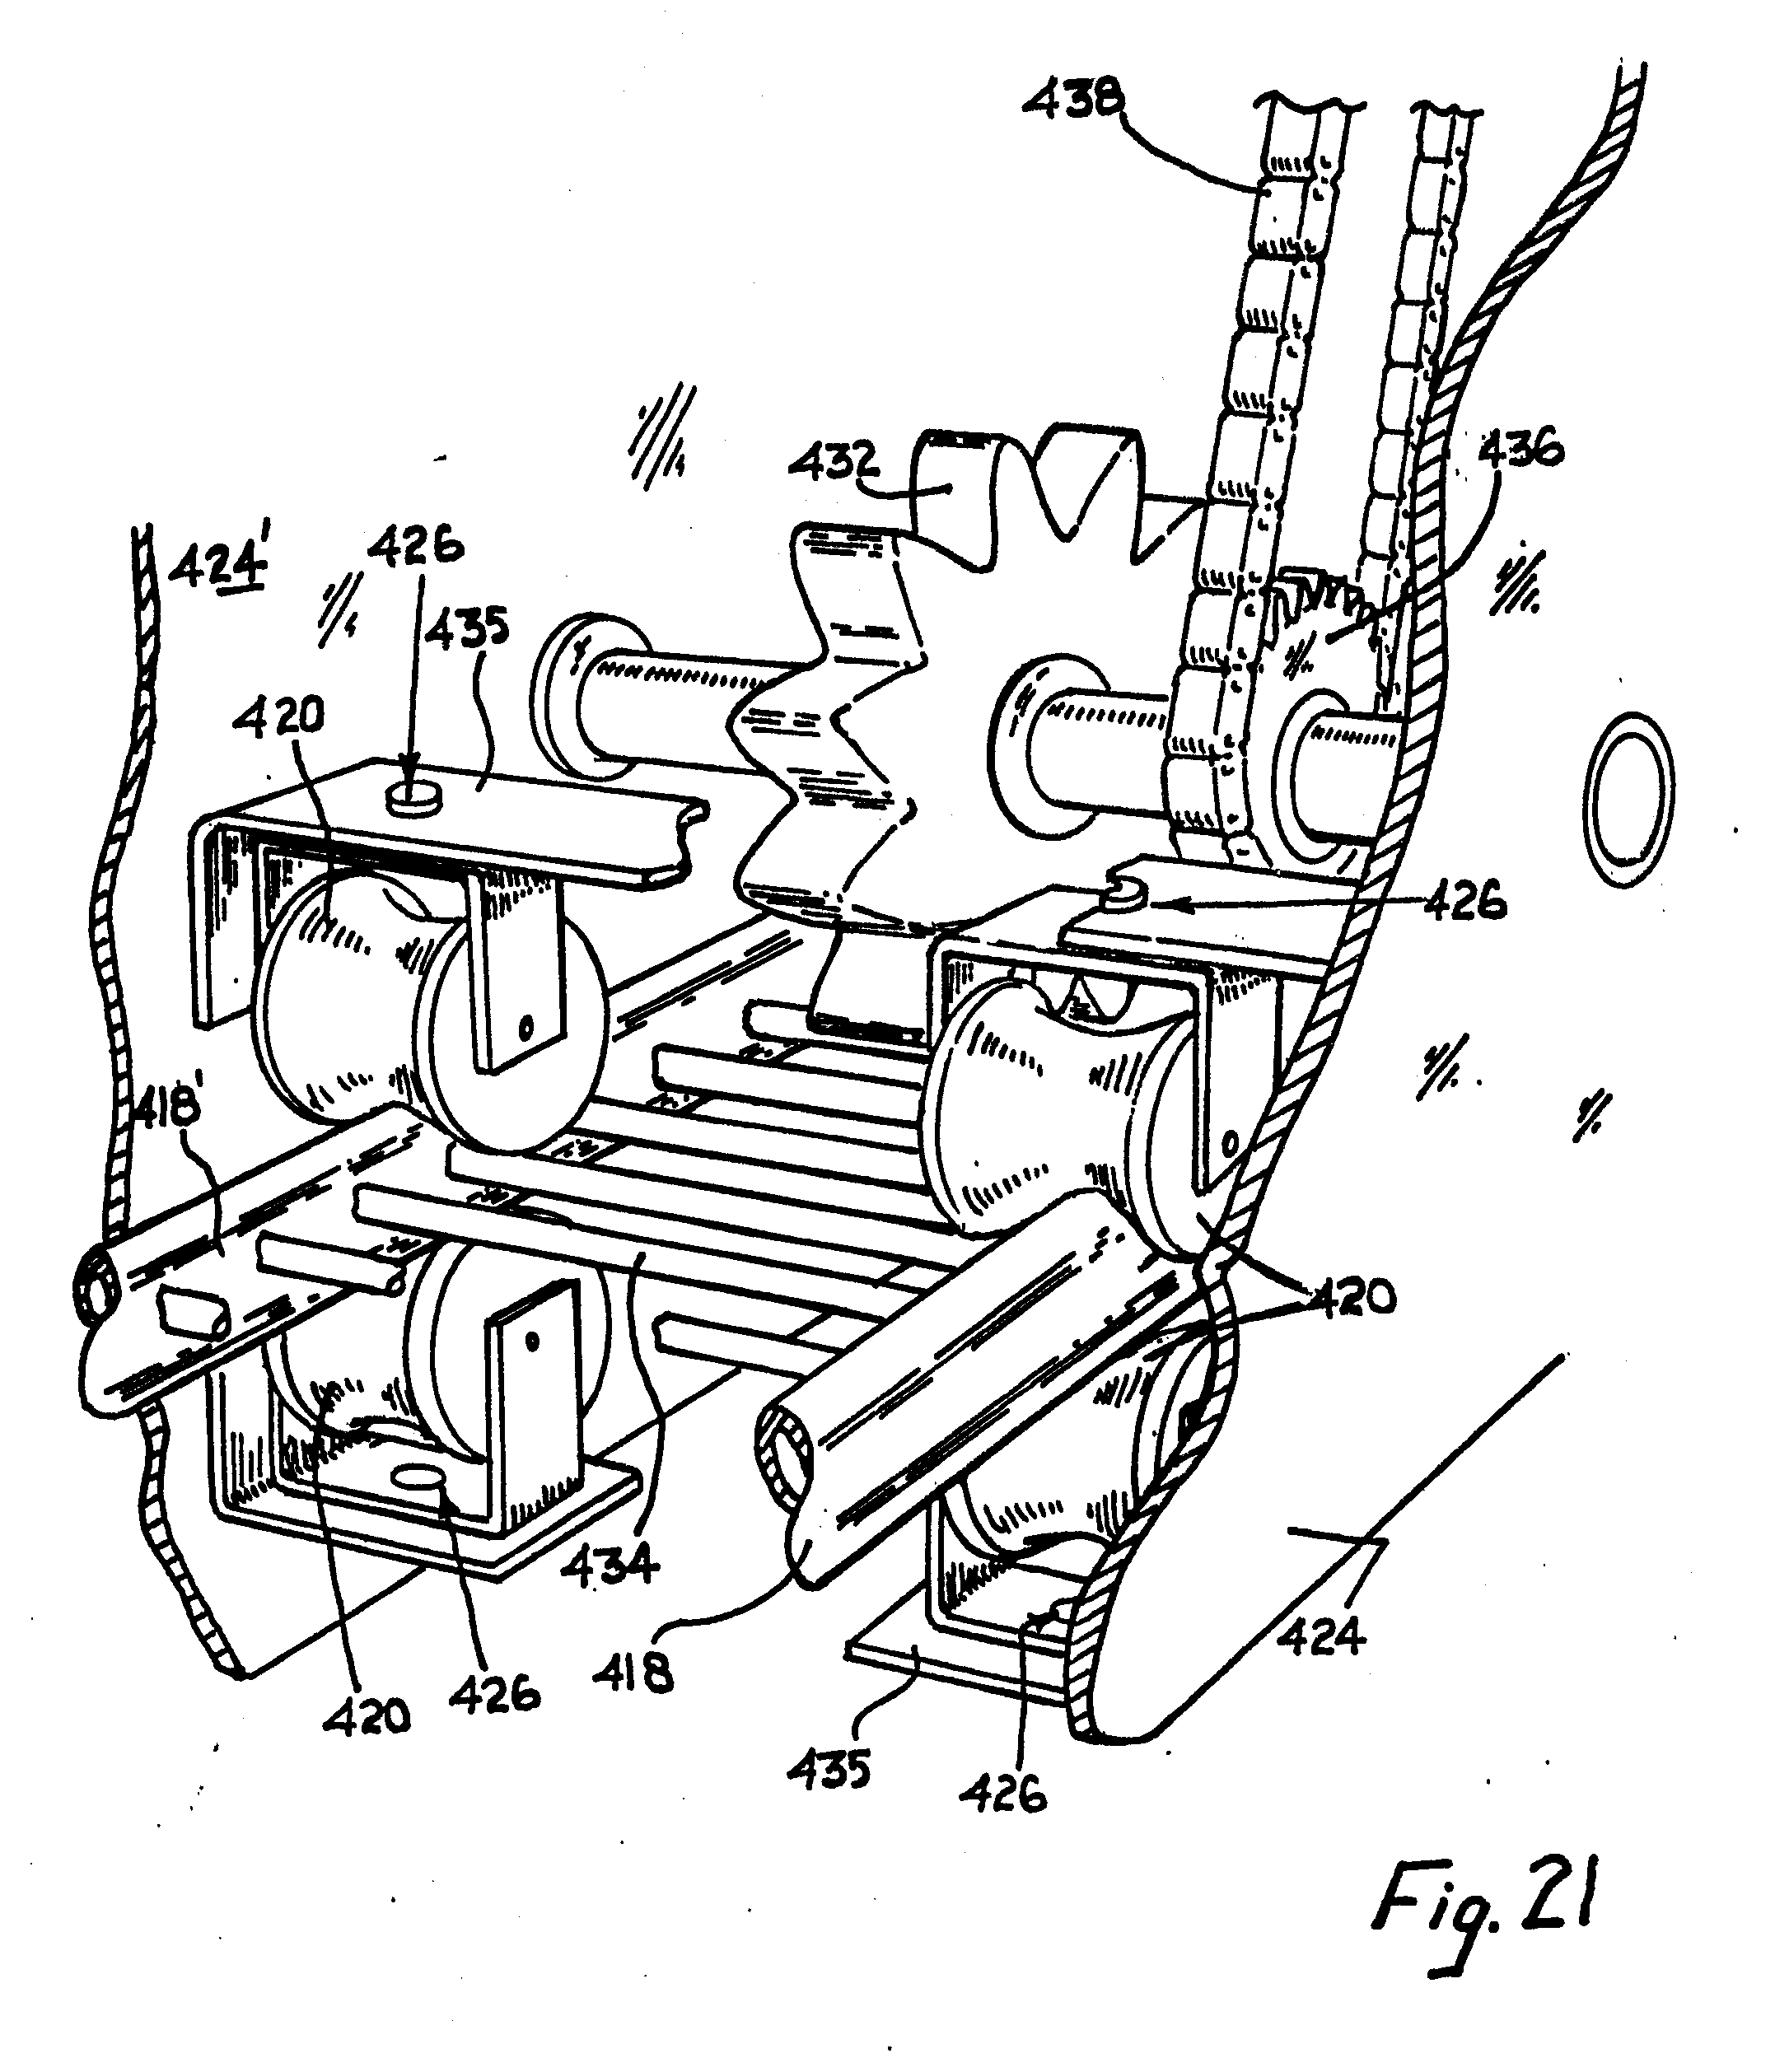 imgf0018 patent ep0137577a1 a stair lift google patents stannah 420 wiring diagram at cos-gaming.co